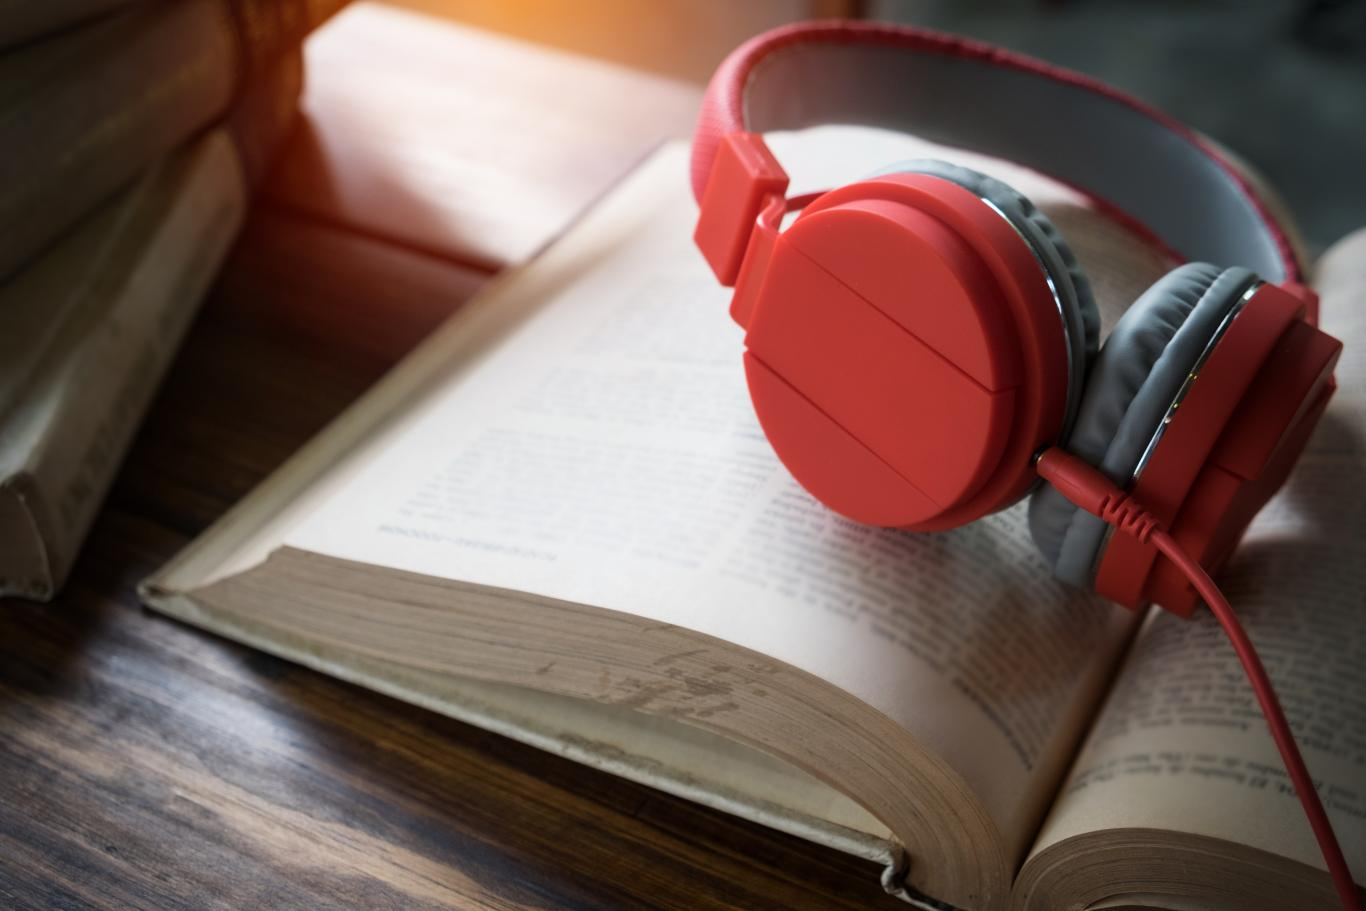 Concept-of-audiobook-Books-on-the-table-with-headphones-put-on-them